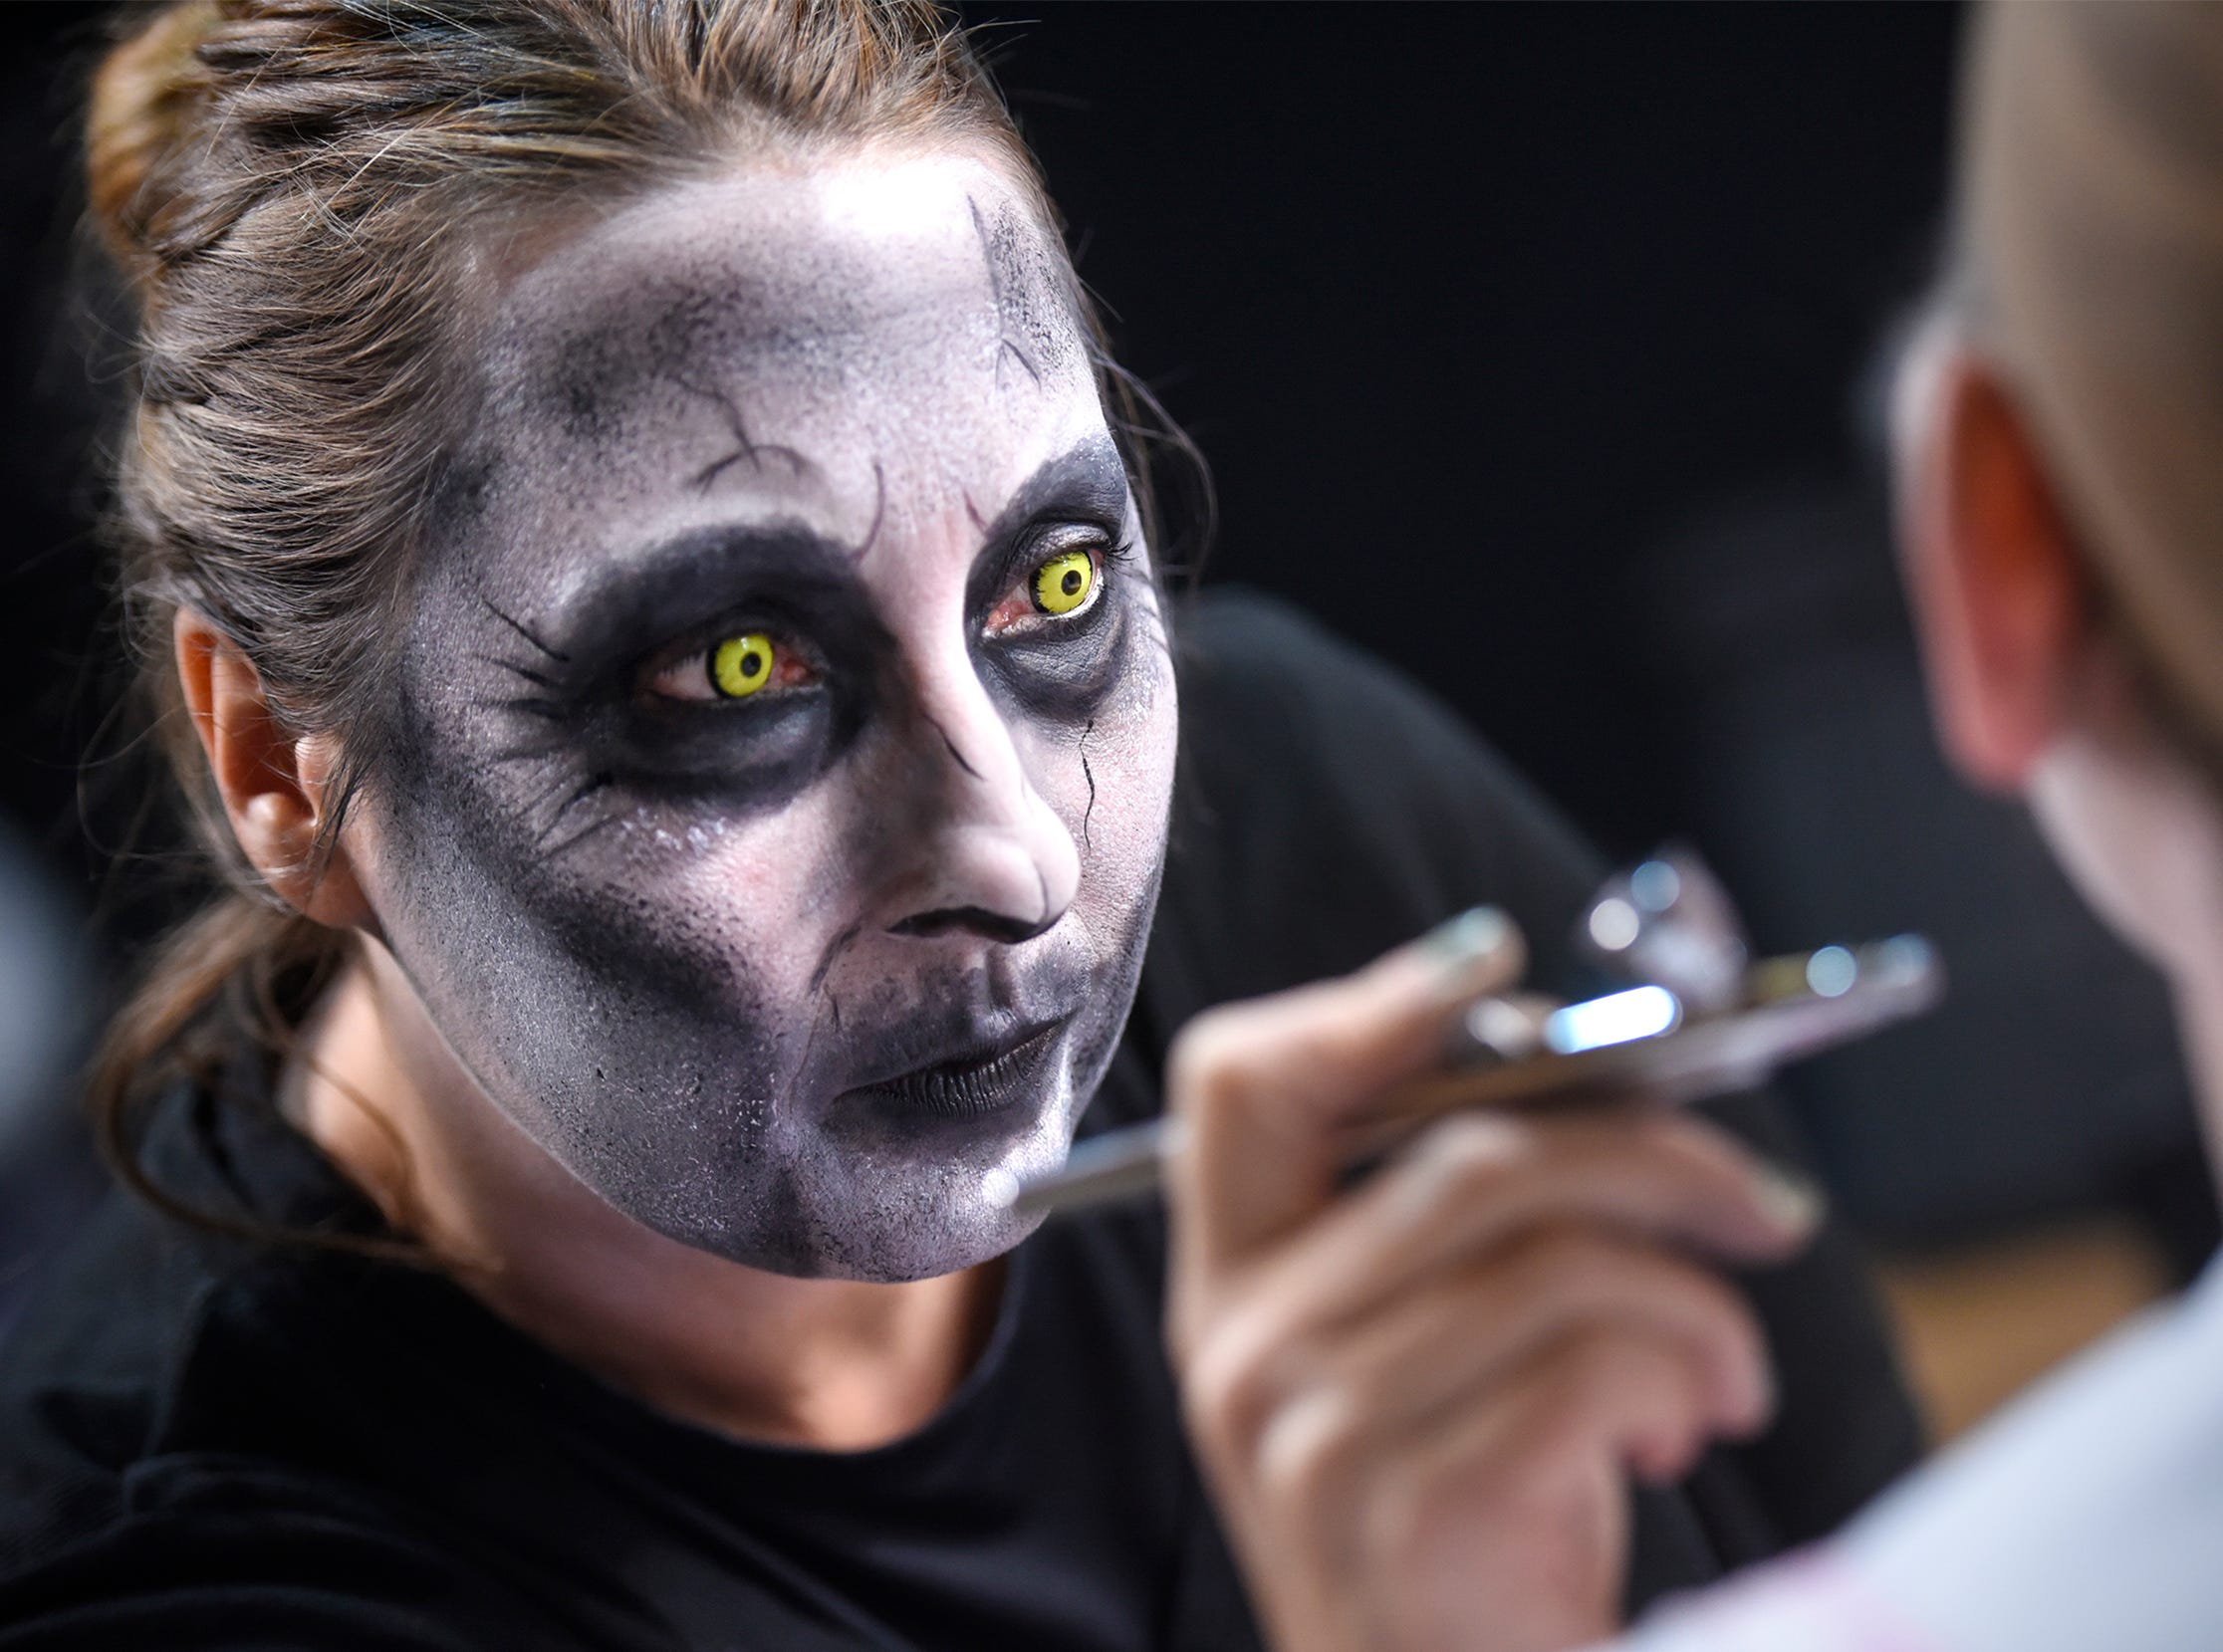 Beth Reimer uses an airbrush while applying makeup on performers Thursday, Oct. 18, at Molitor's Haunted Acres in Sauk Rapids. This year marks the 21st season of the haunted attraction.